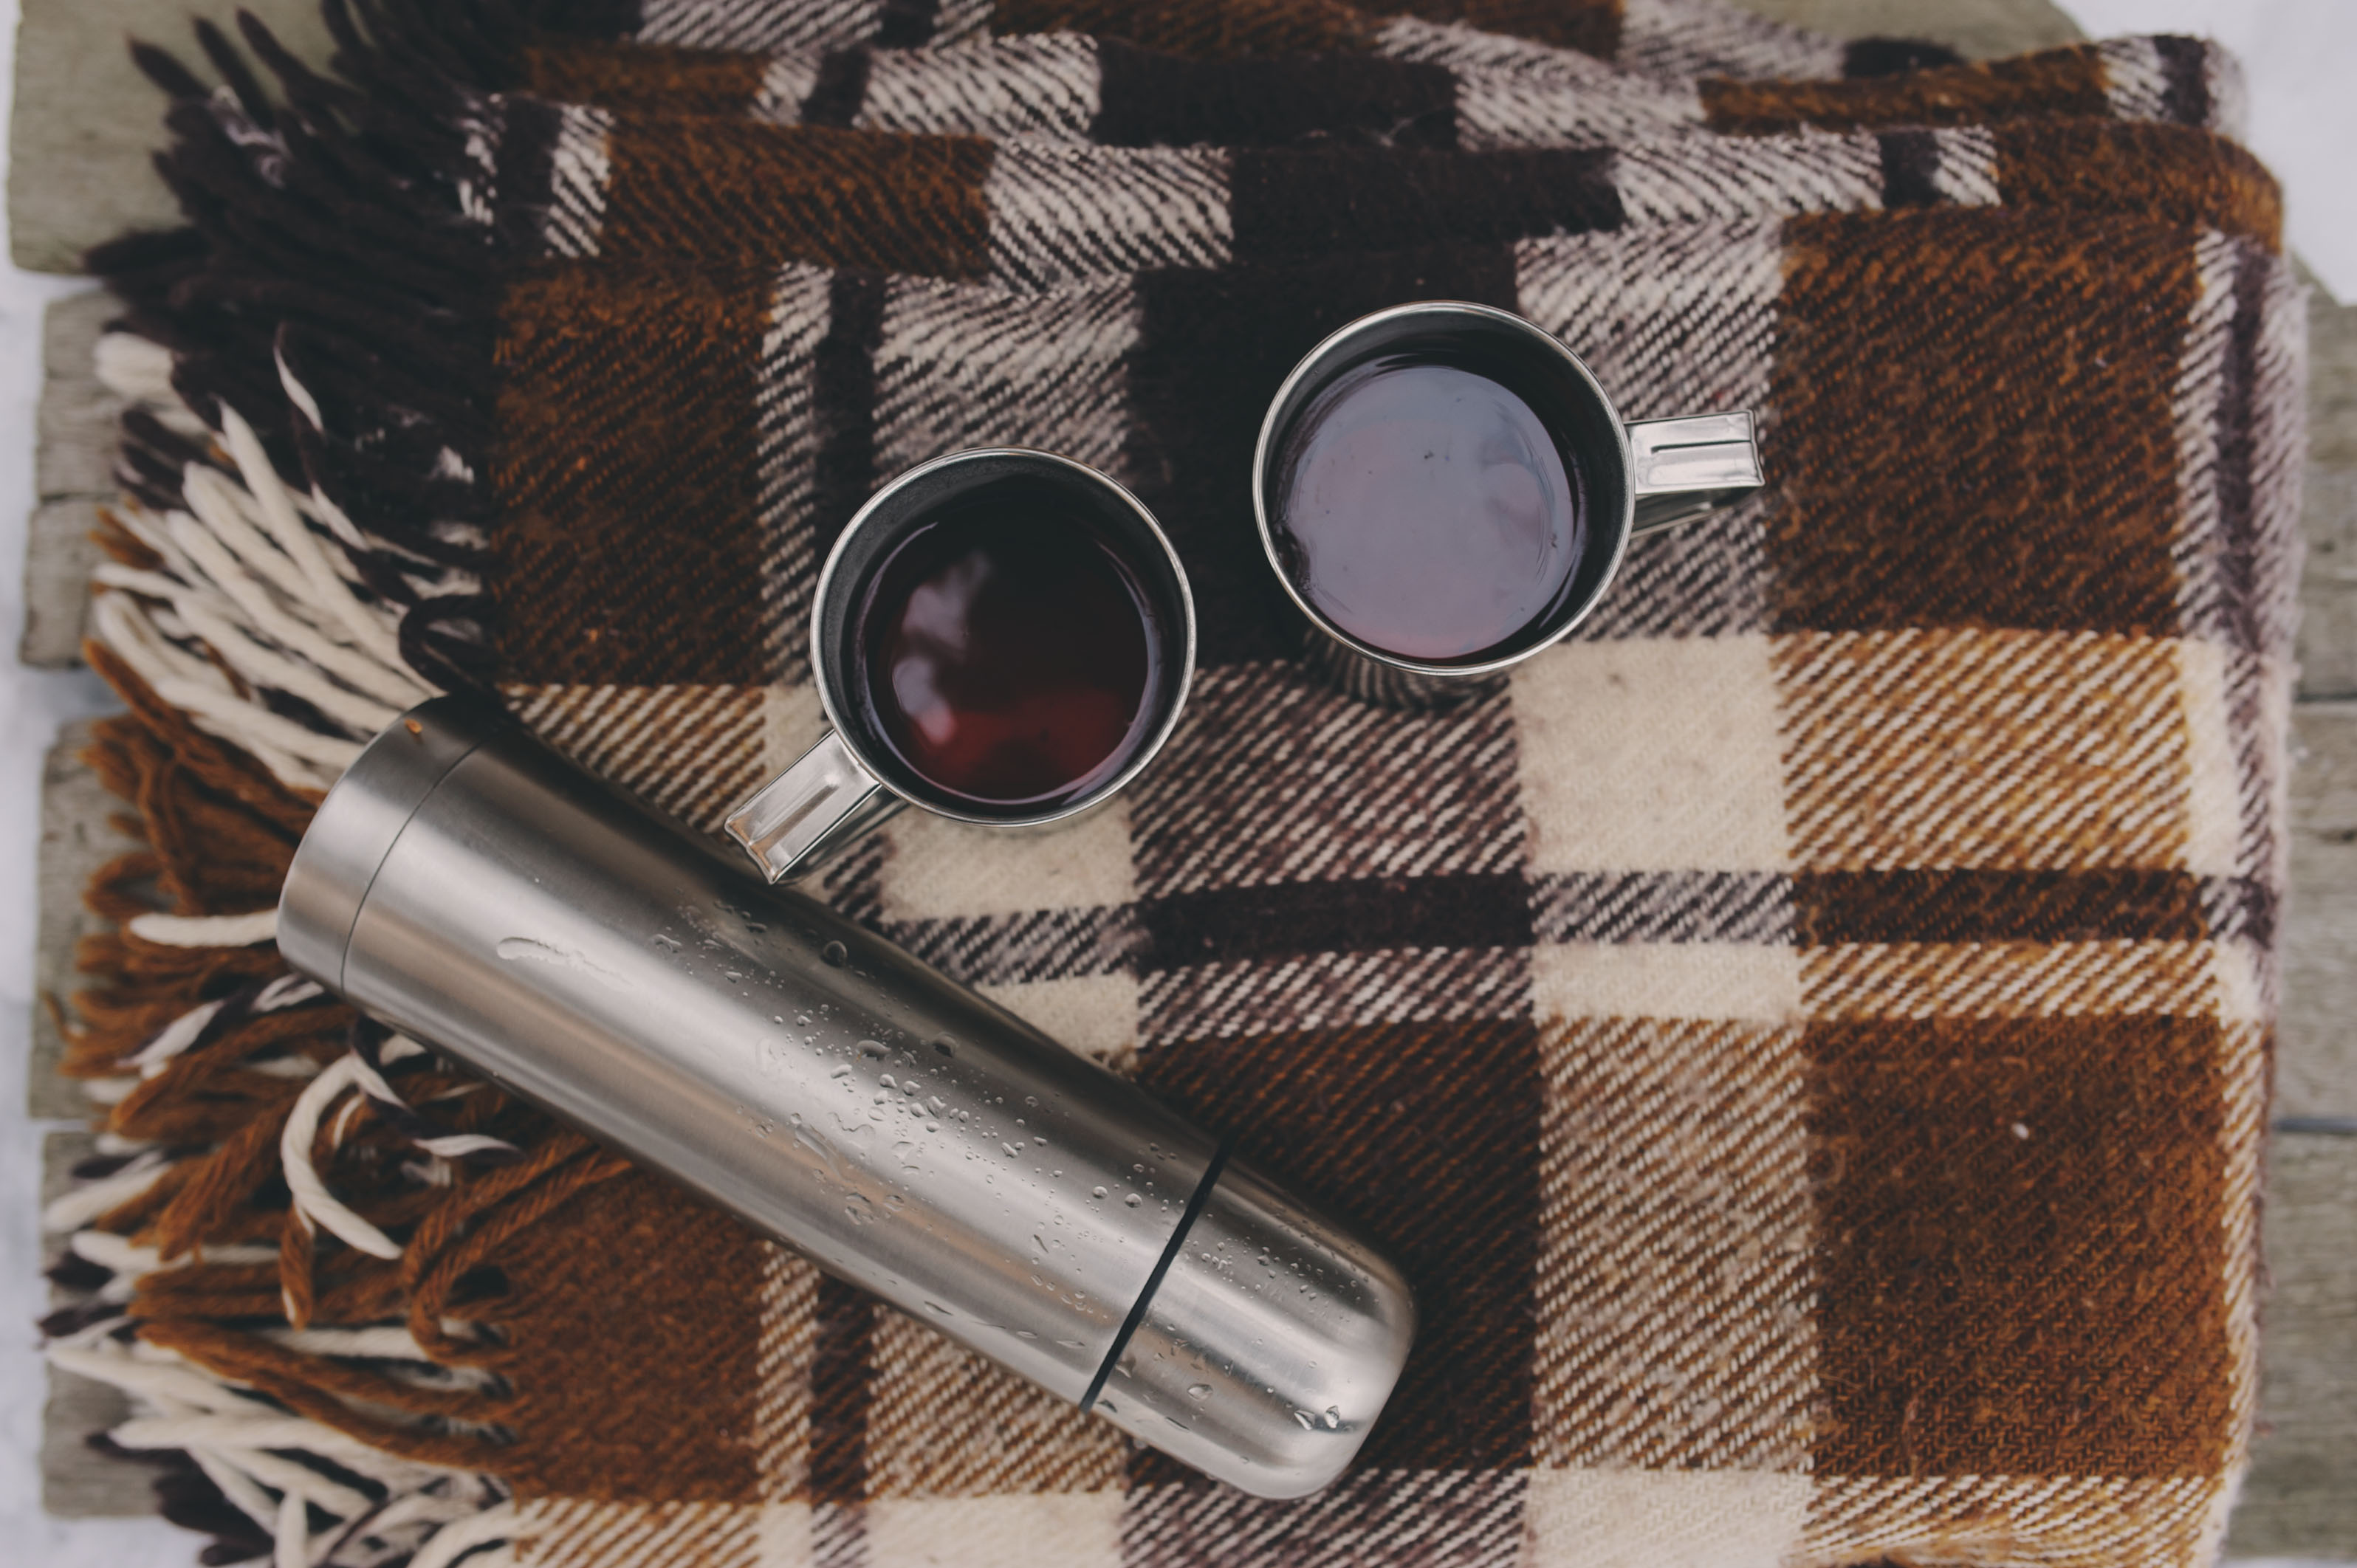 How To Deodorize A Thermos | Hunker